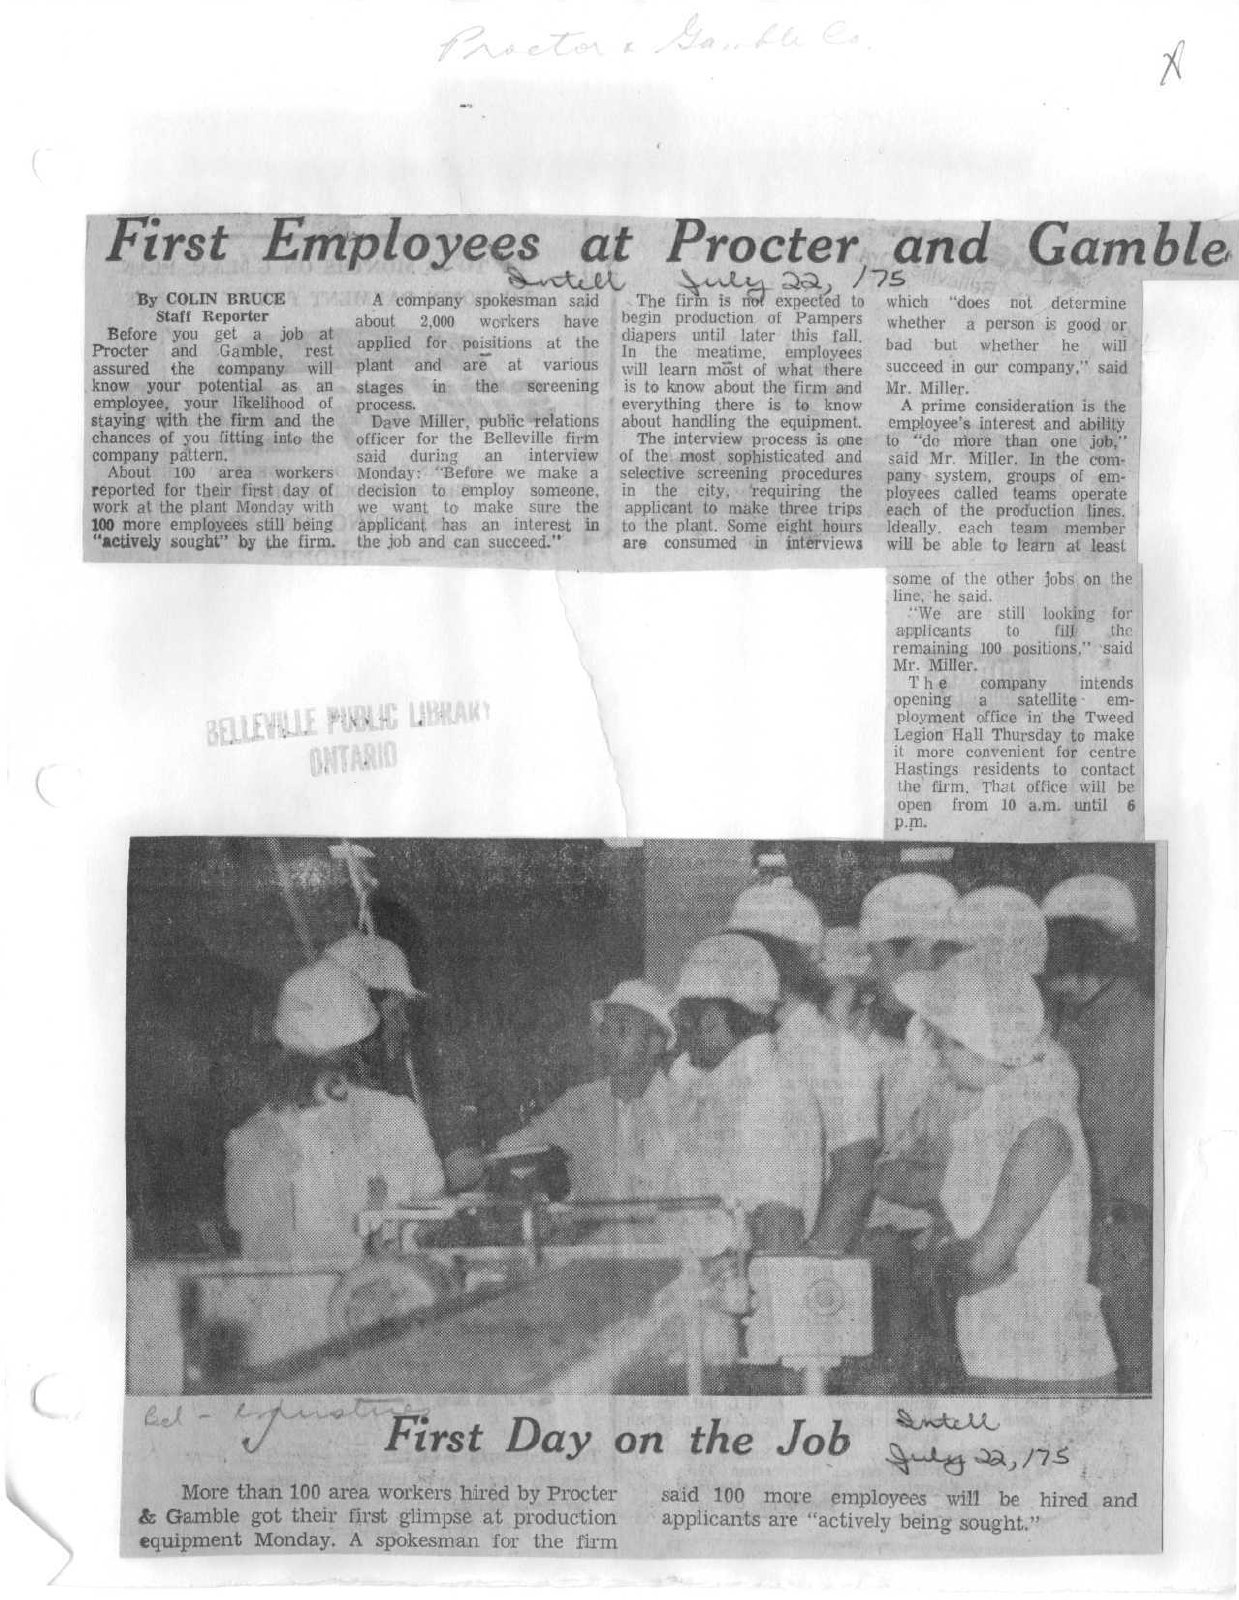 First Employees at Procter and Gamble